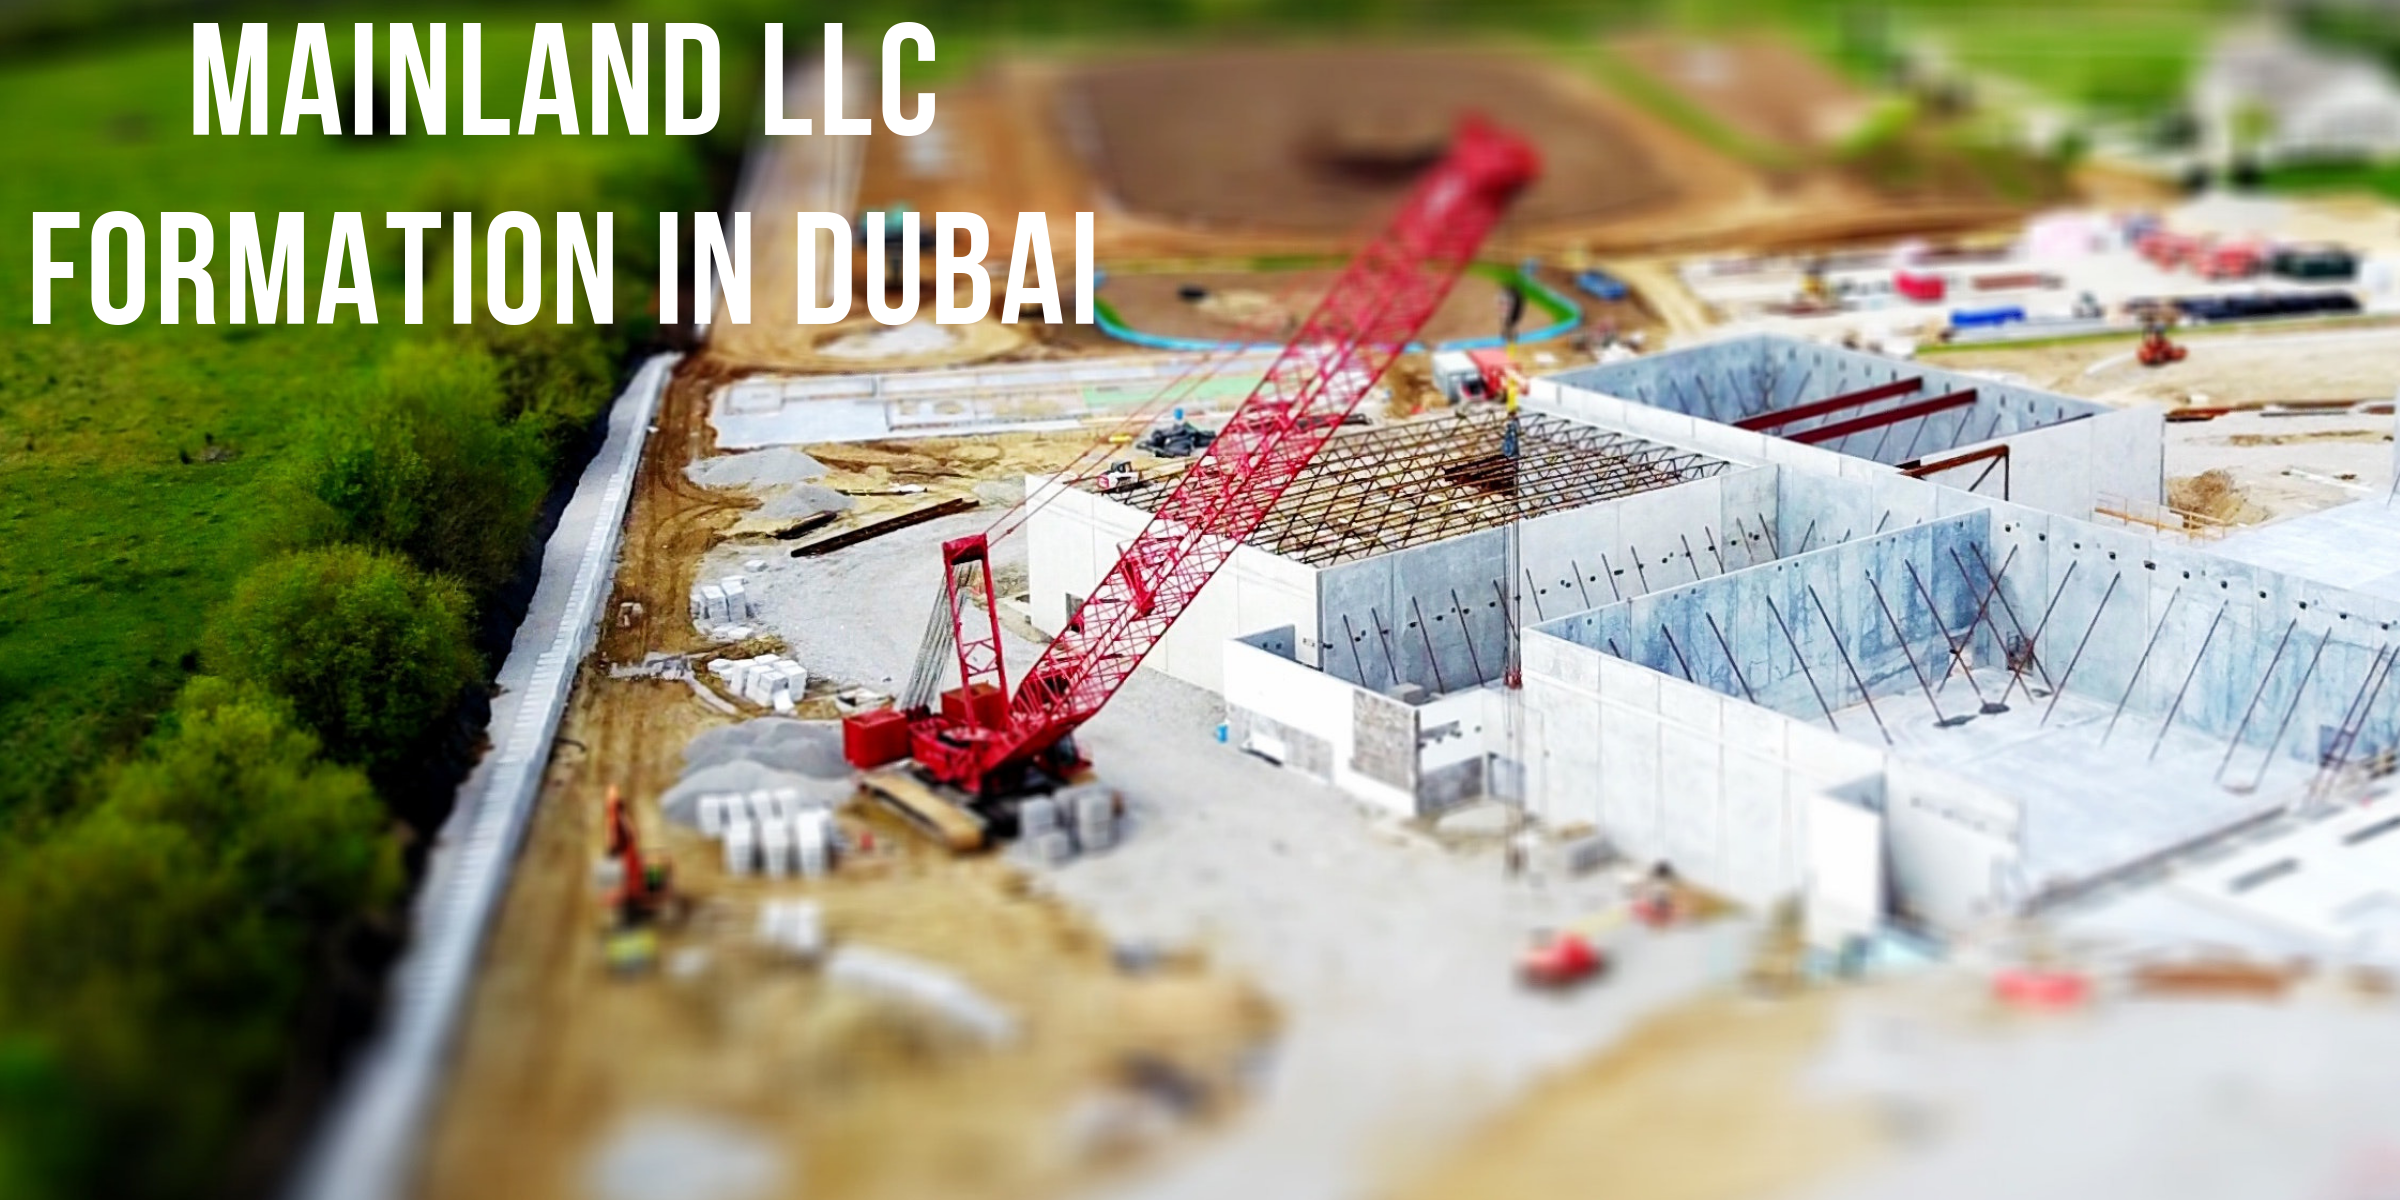 MAINLAND LLC FORMATION IN DUBAI